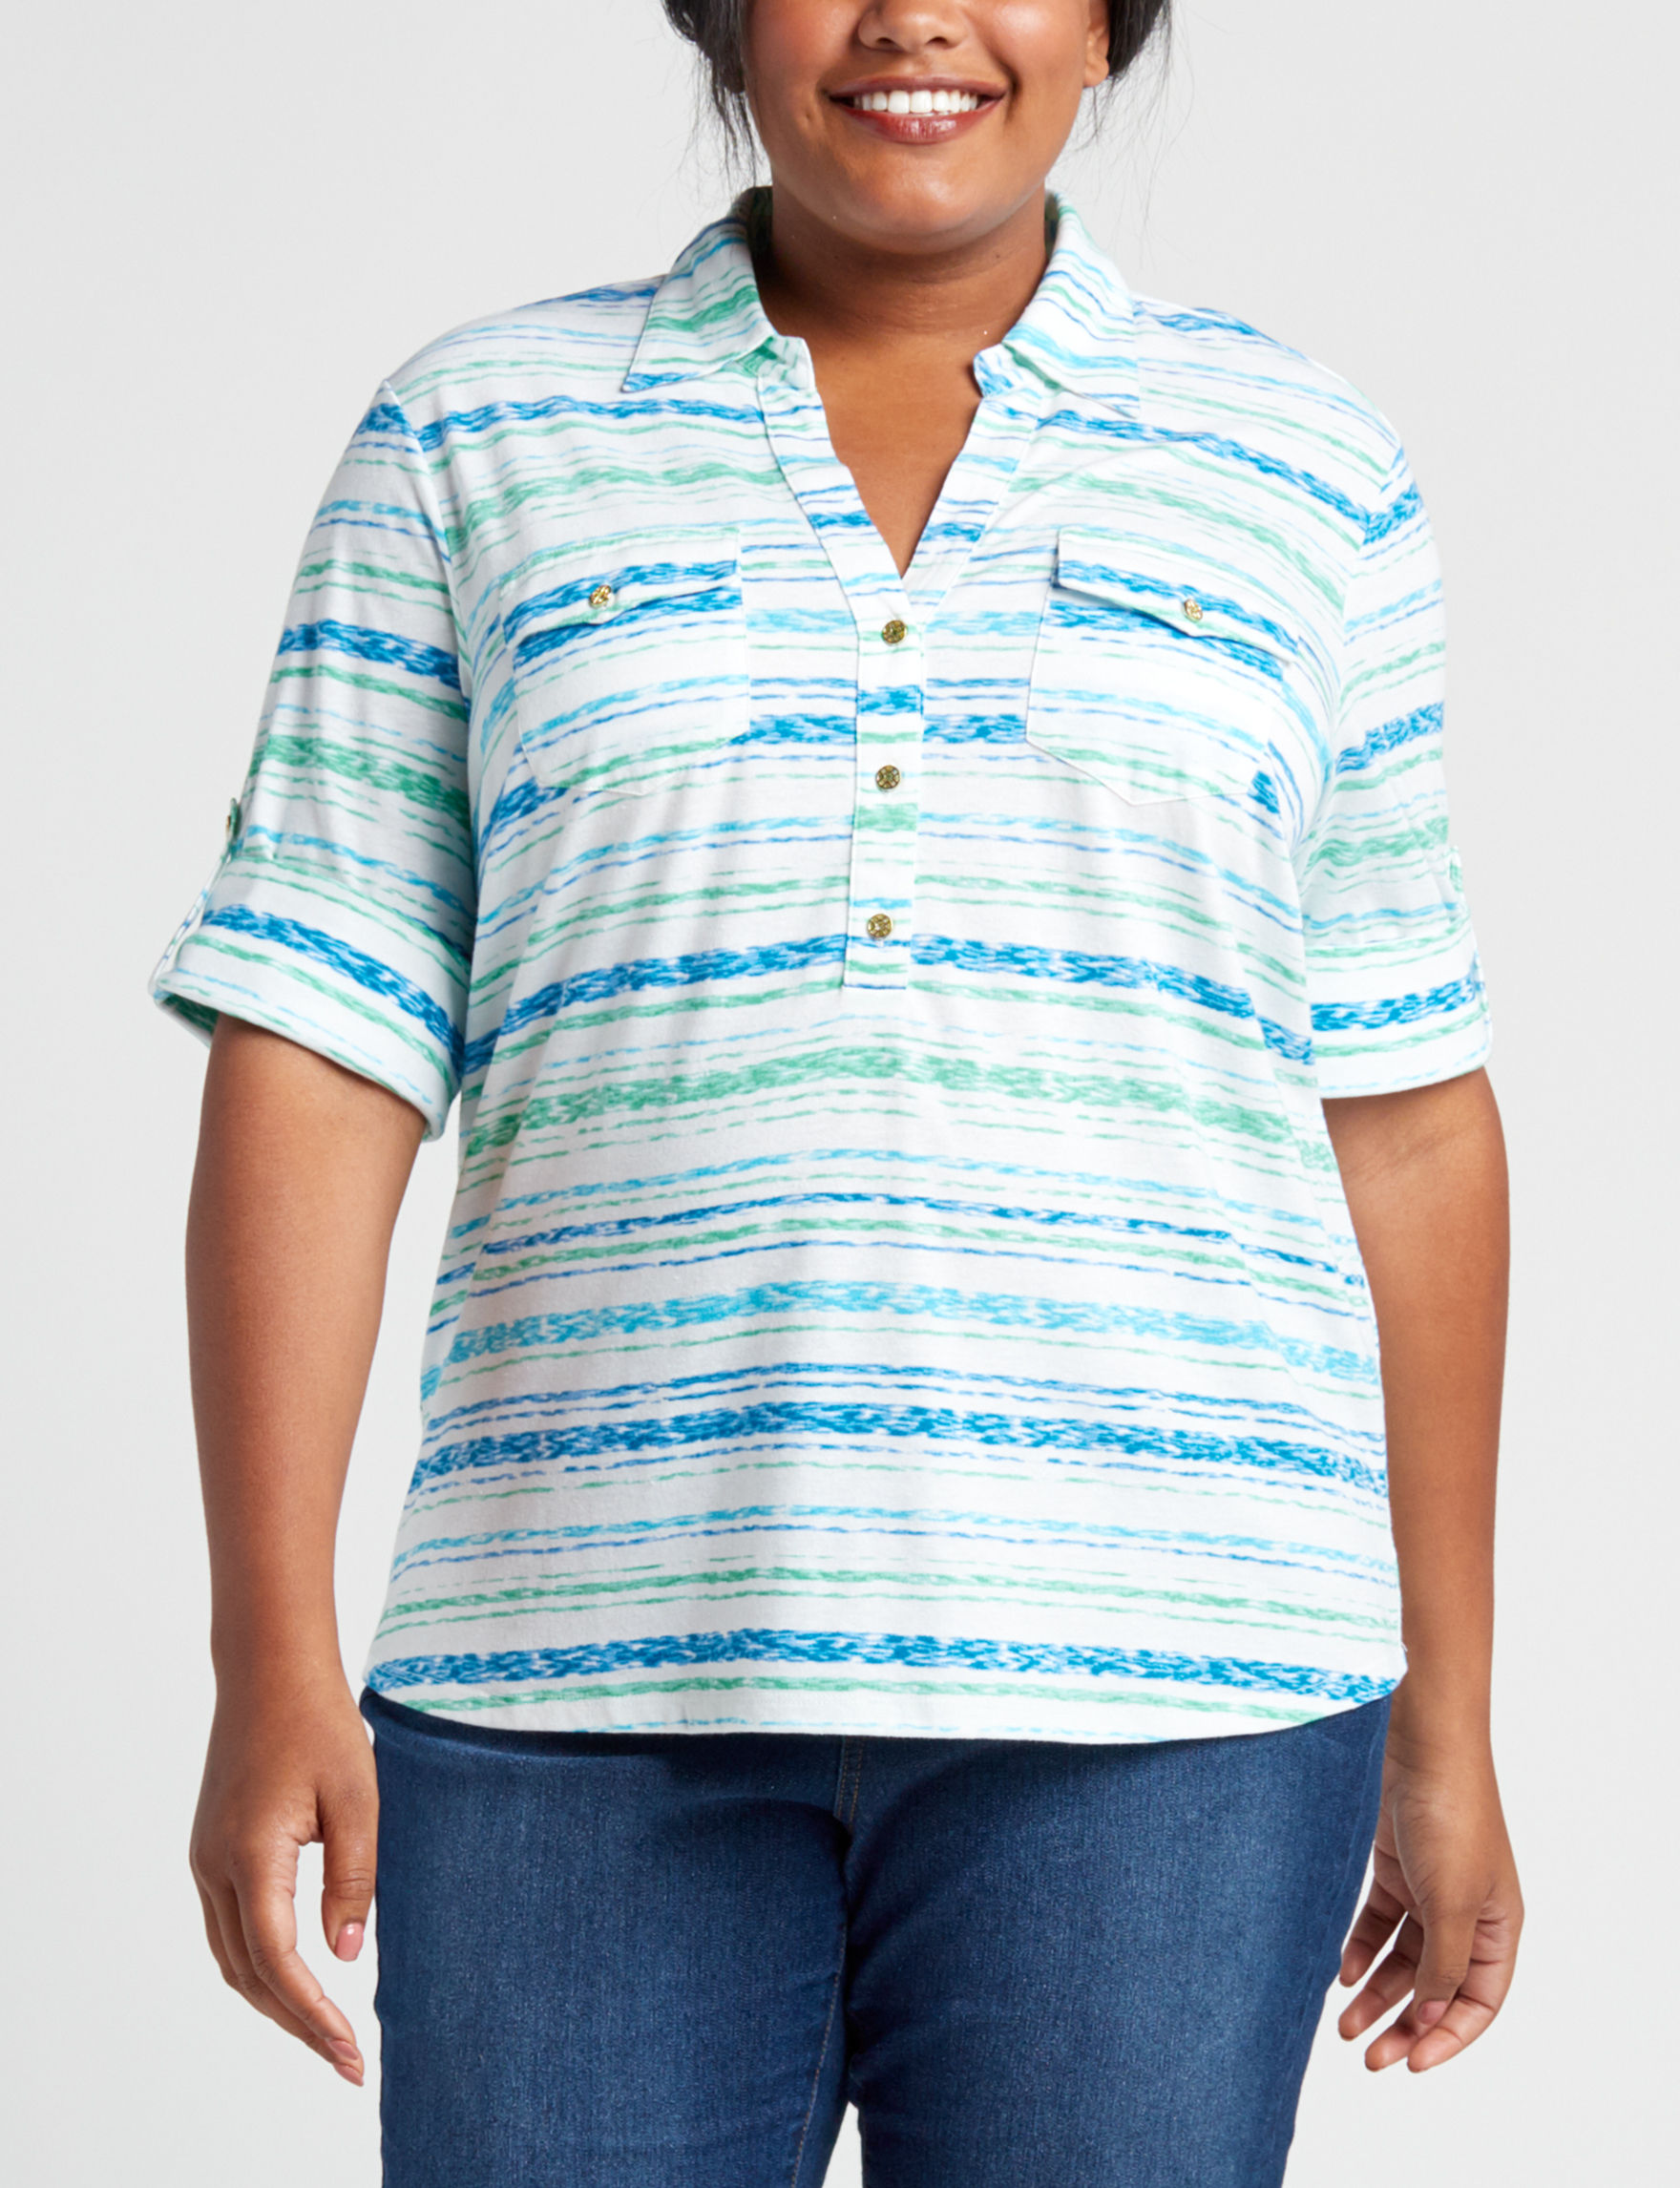 Cathy Daniels Blue Pull-overs Shirts & Blouses